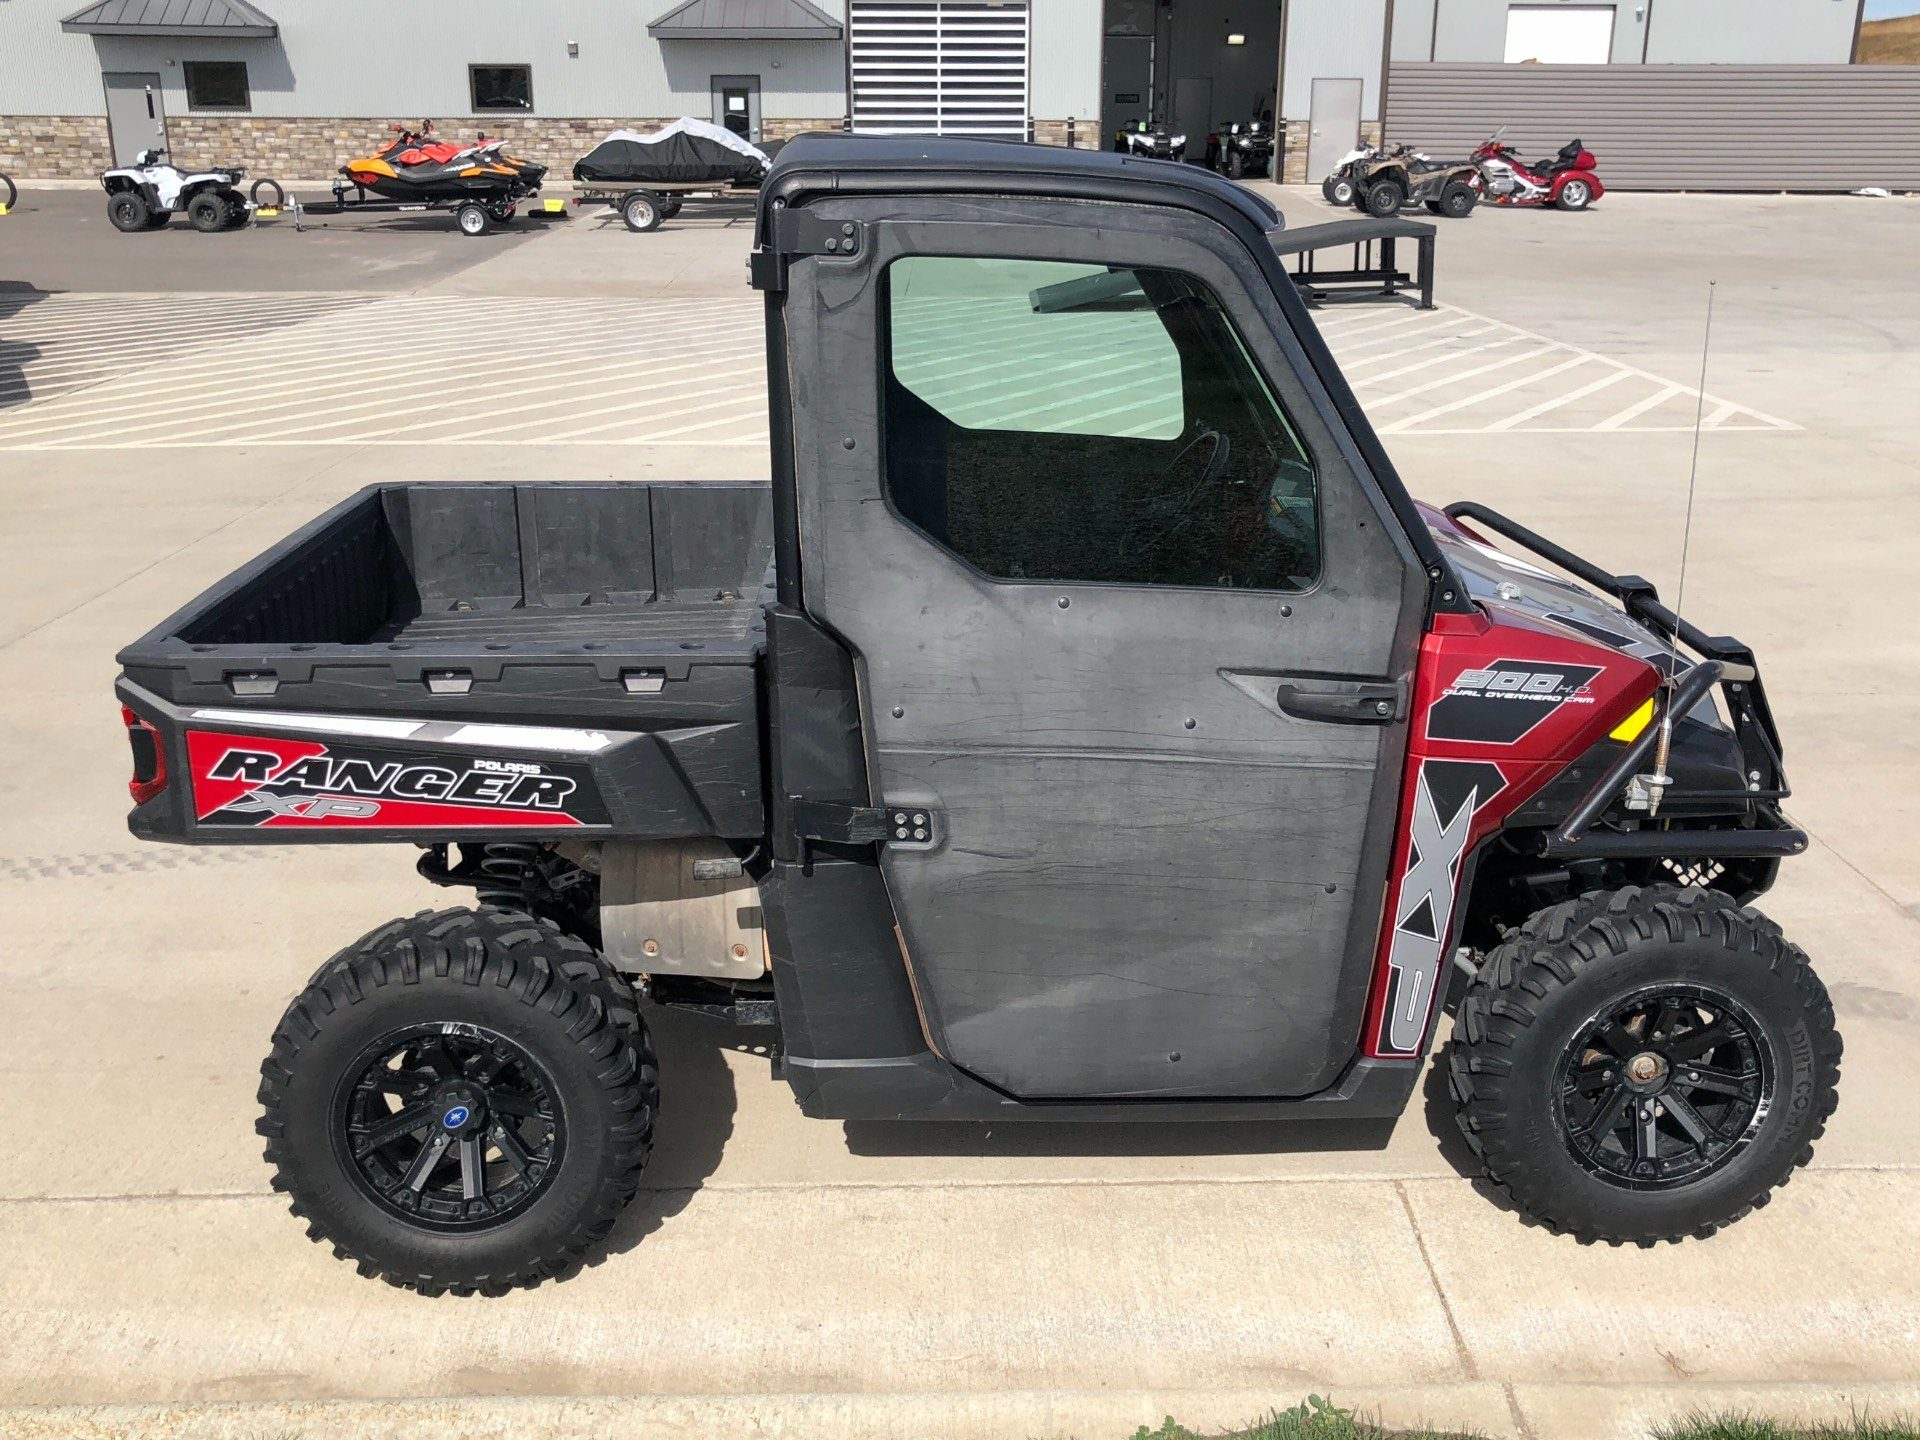 2015 Polaris Ranger >> Used 2015 Polaris Ranger Xp 900 Eps Utility Vehicles In Rapid City Sd